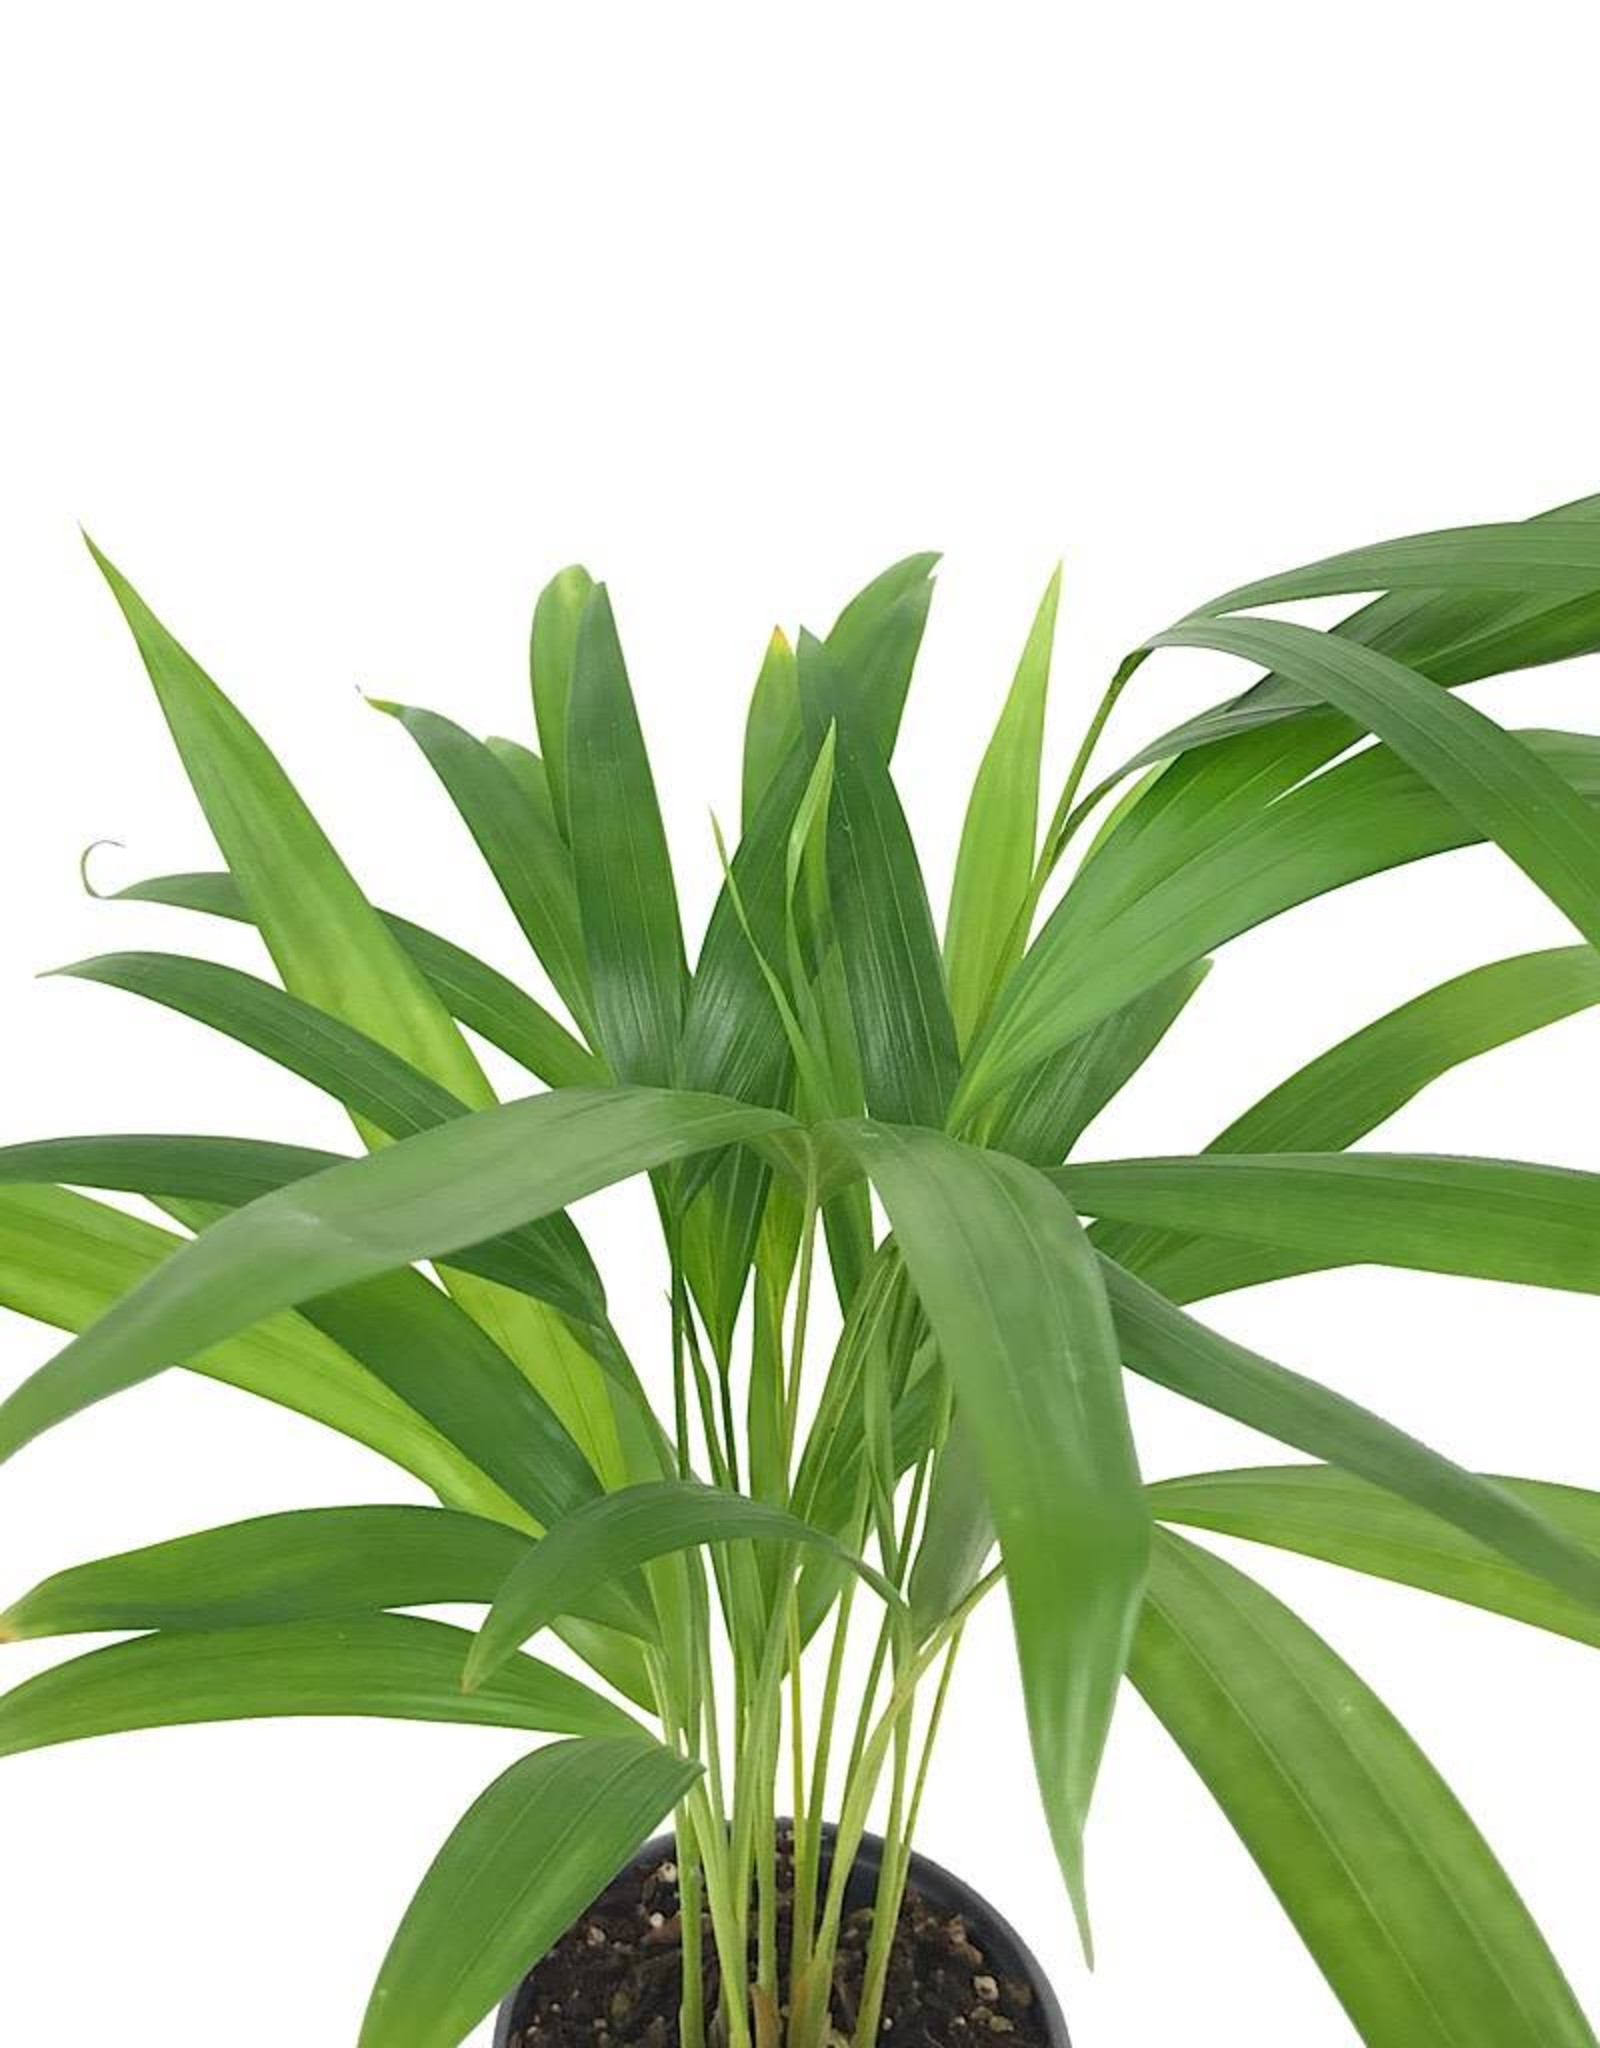 Dypsis lutescens 4 Inch